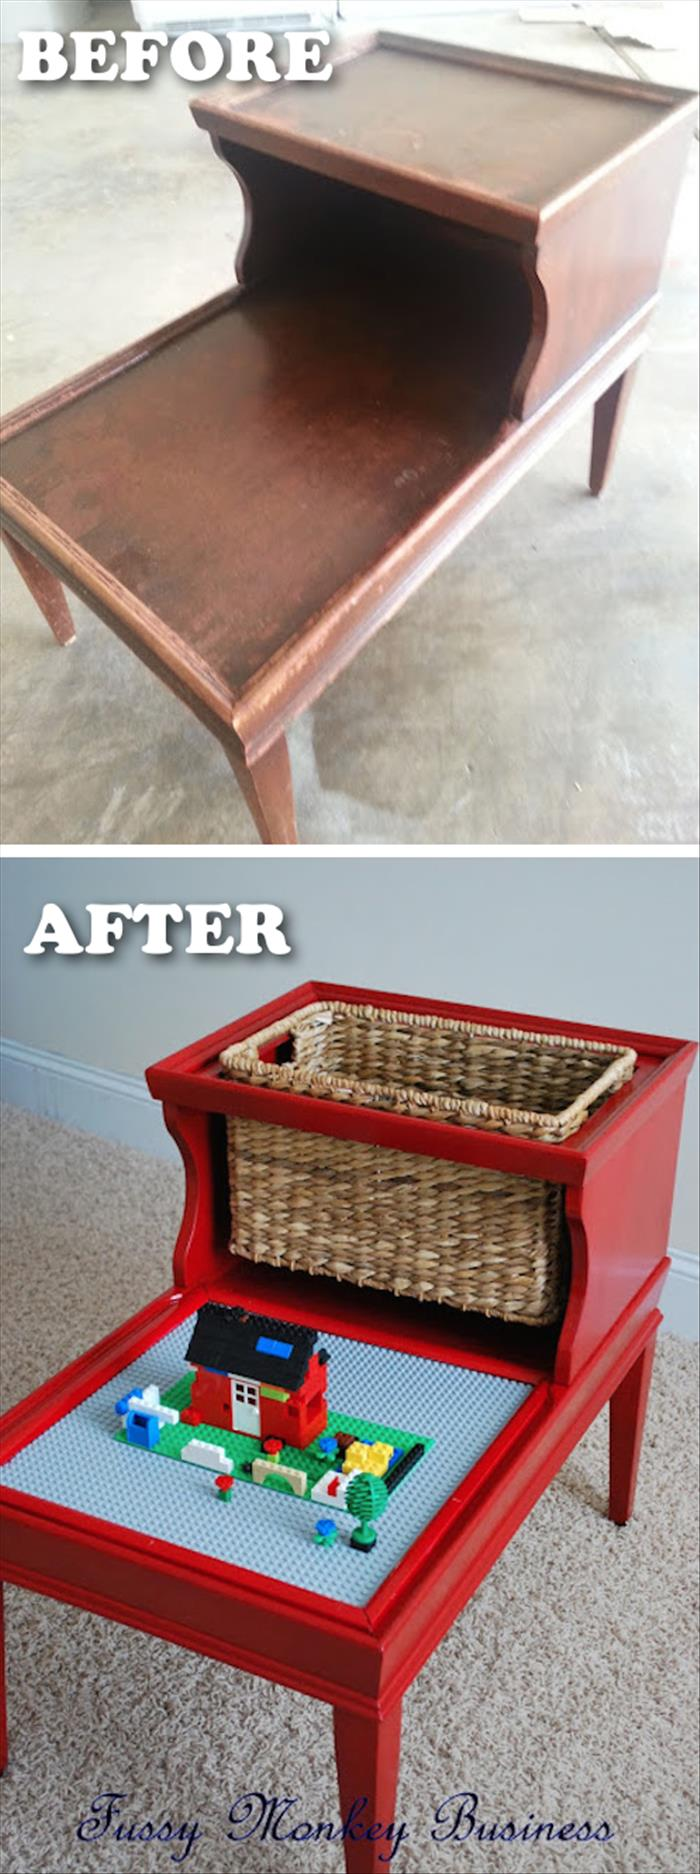 furniture hacks (2)